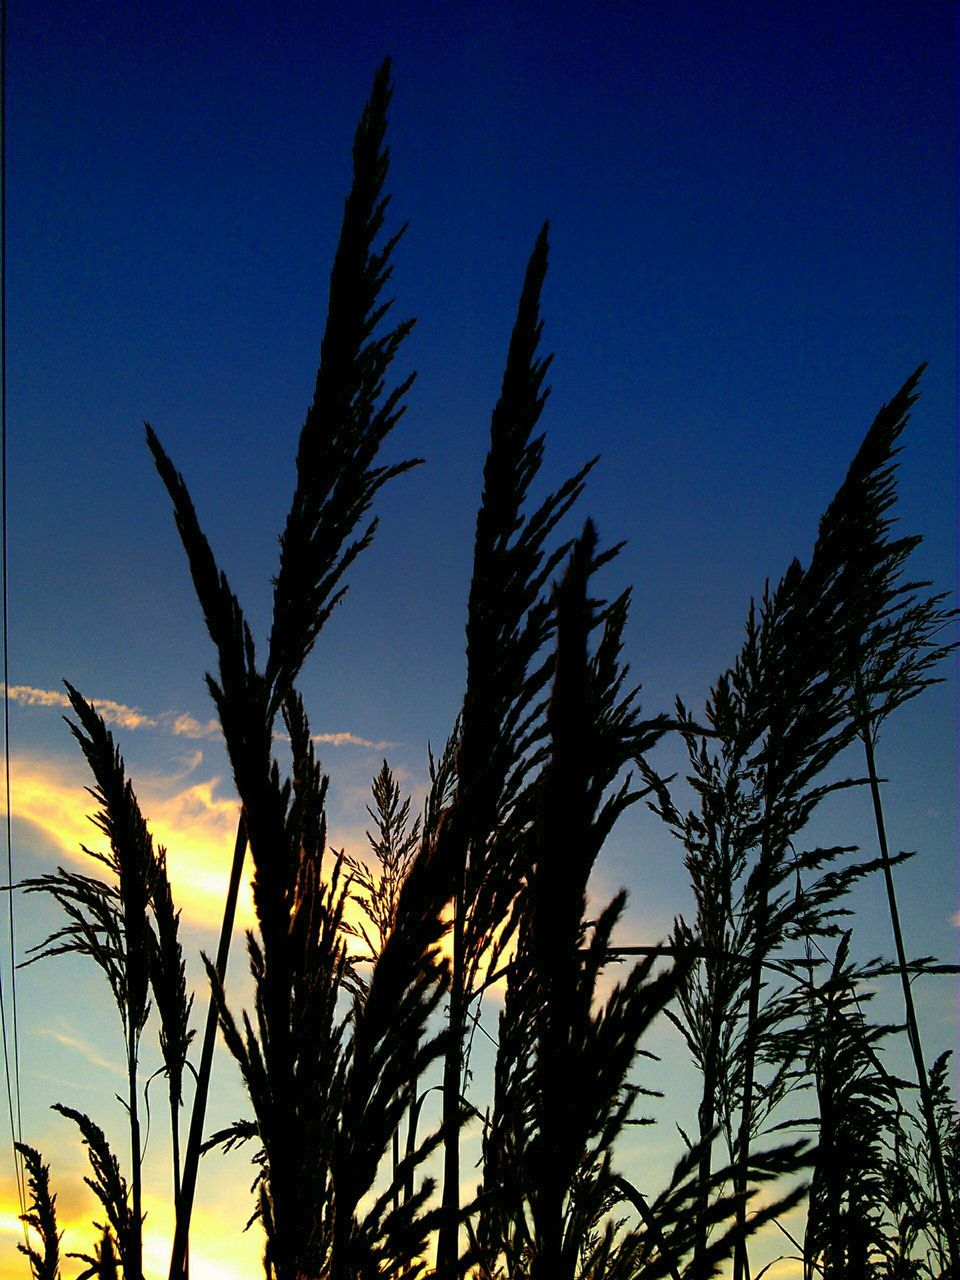 Low Angle View Of Silhouette Grasses Against Sky